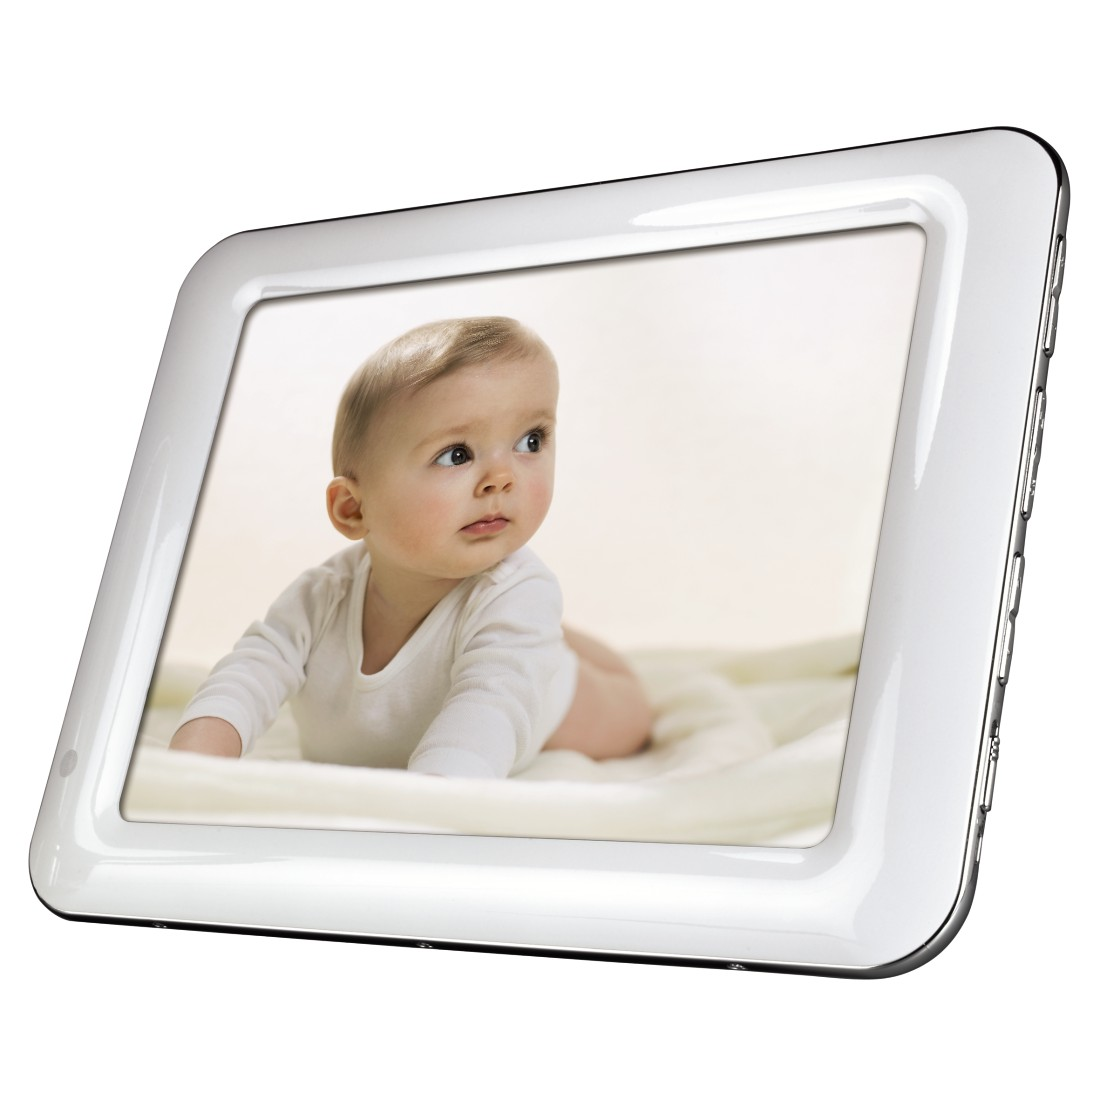 HAMA Slimeline Digital Photo Frame Drivers Windows 7